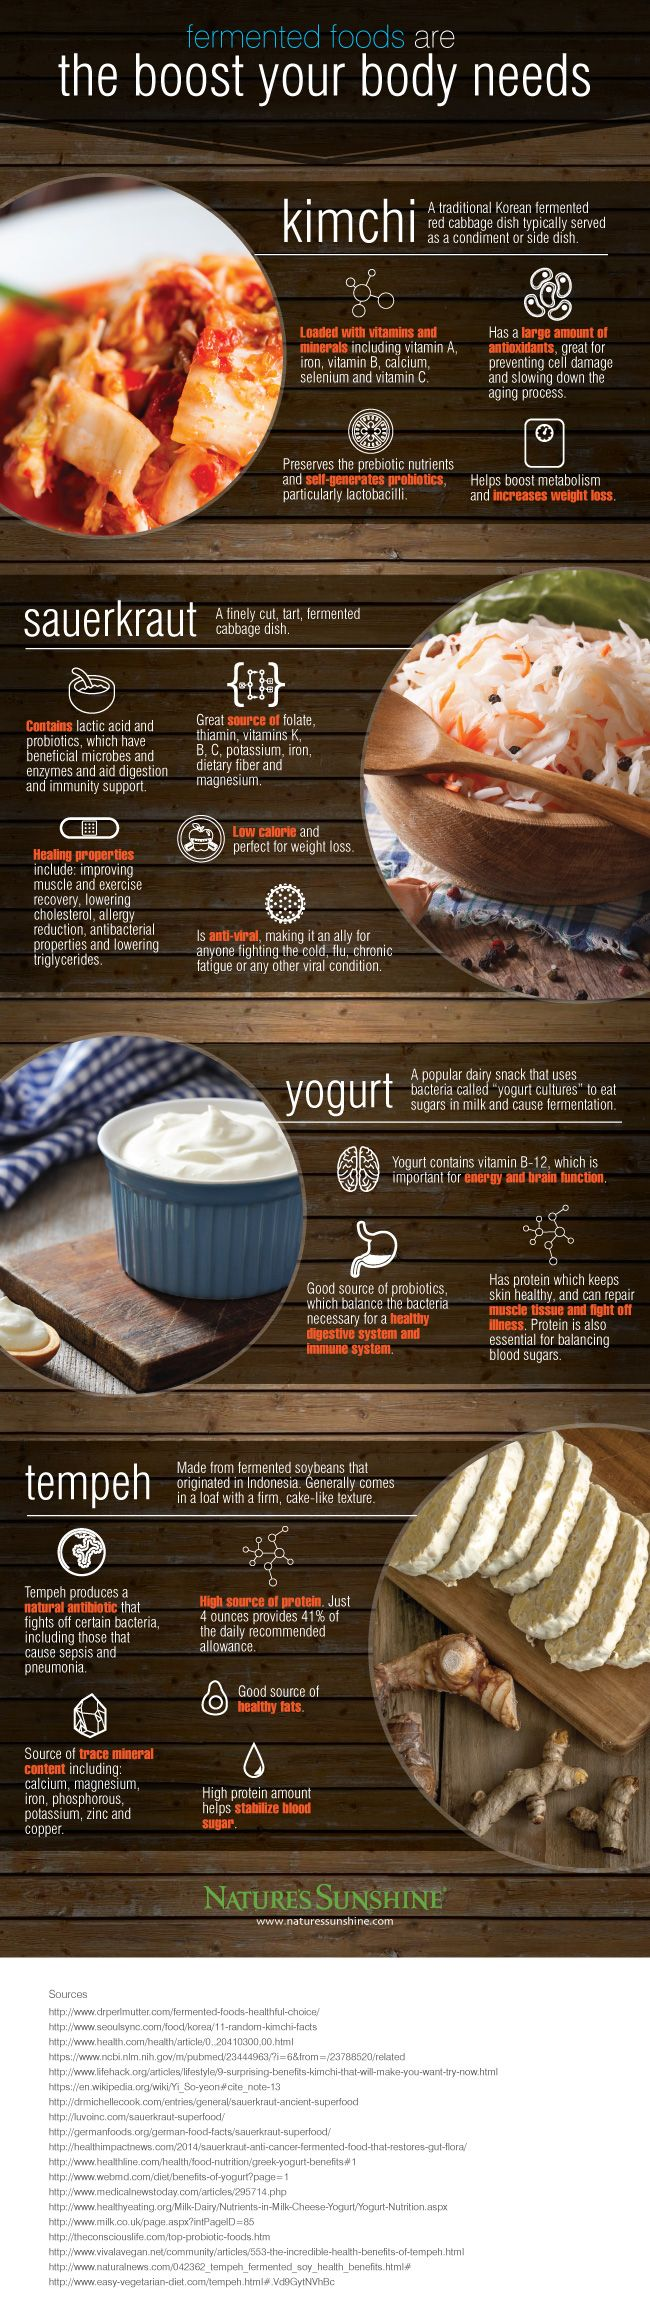 8 best cibus sanus images on Pinterest | Drink, Healthy meals and ...